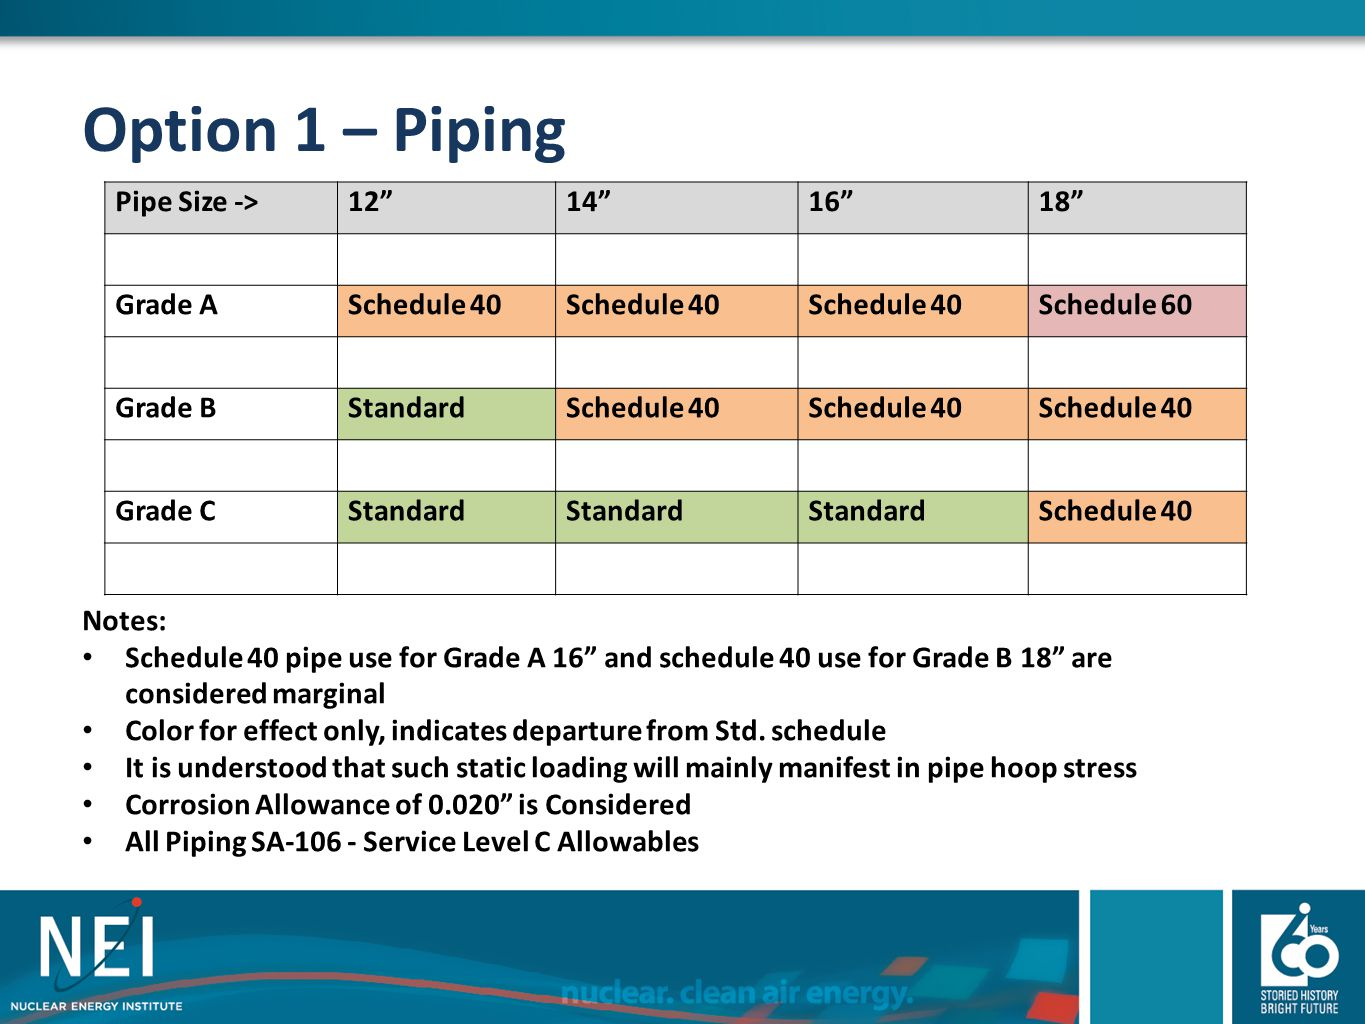 Option 1 – Piping Pipe Size -> 12 14 16 18 Grade A Schedule 40